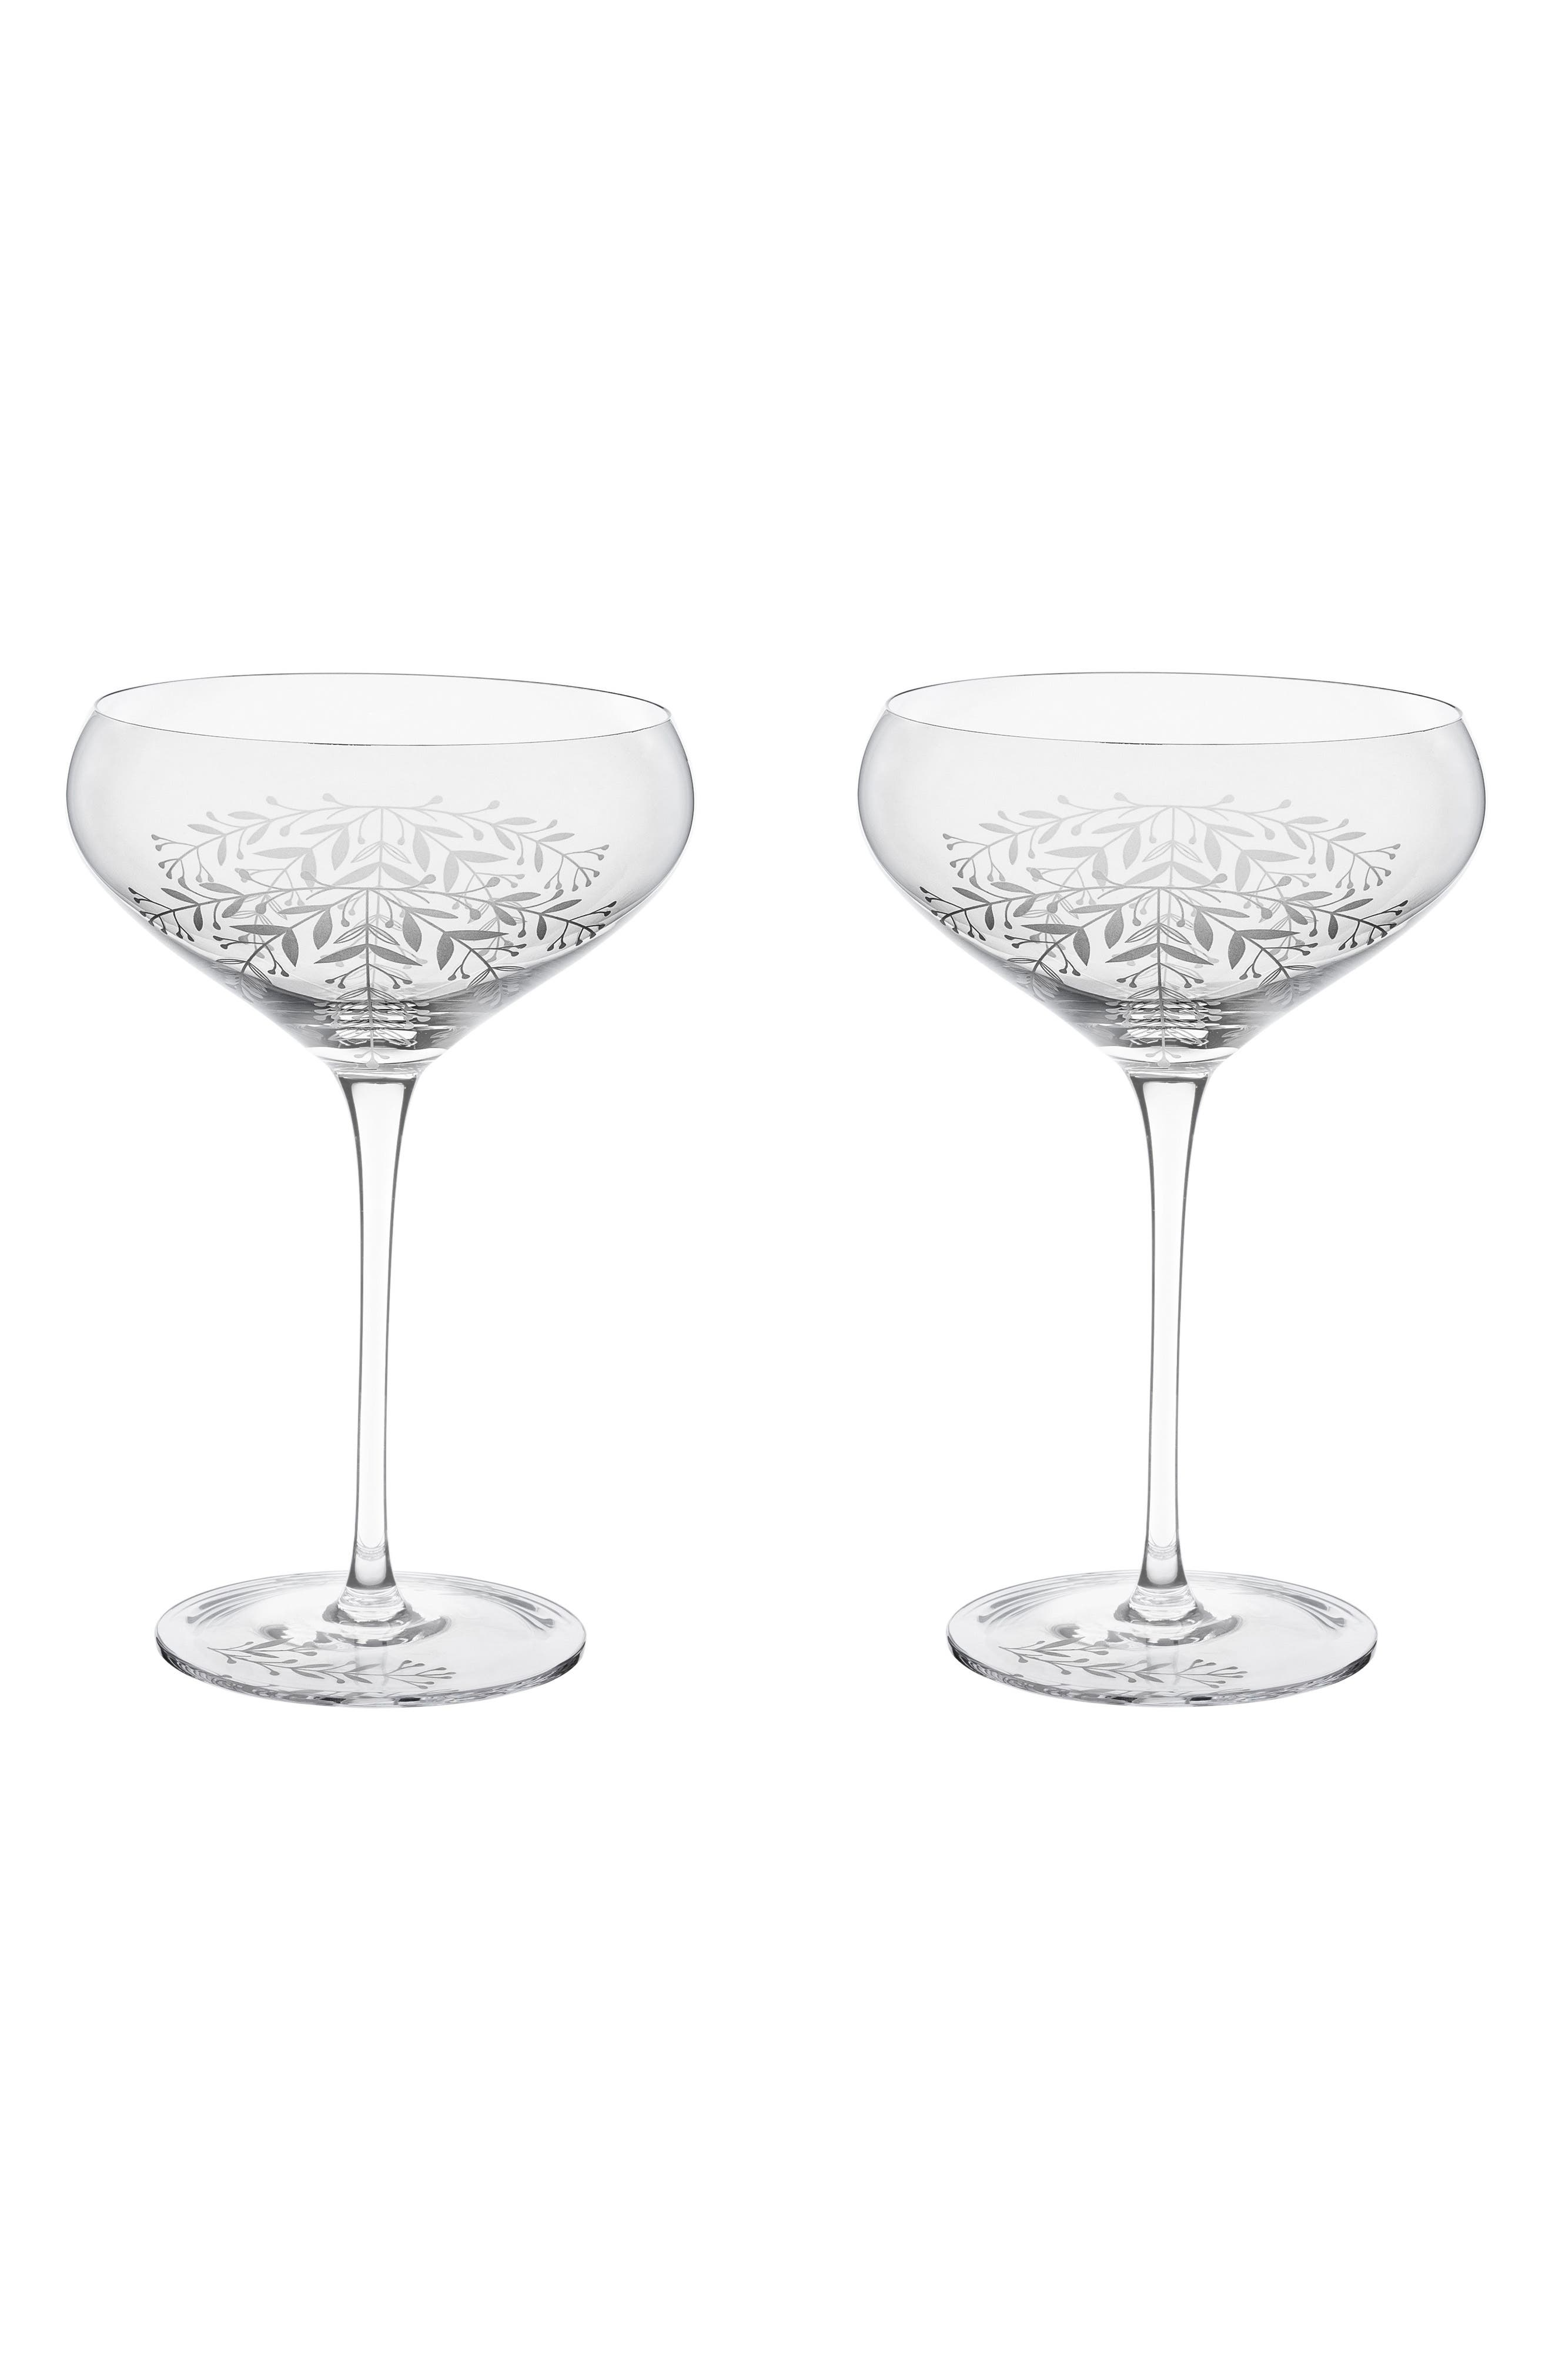 Floral Set of 2 Champagne Coupes,                             Main thumbnail 1, color,                             100